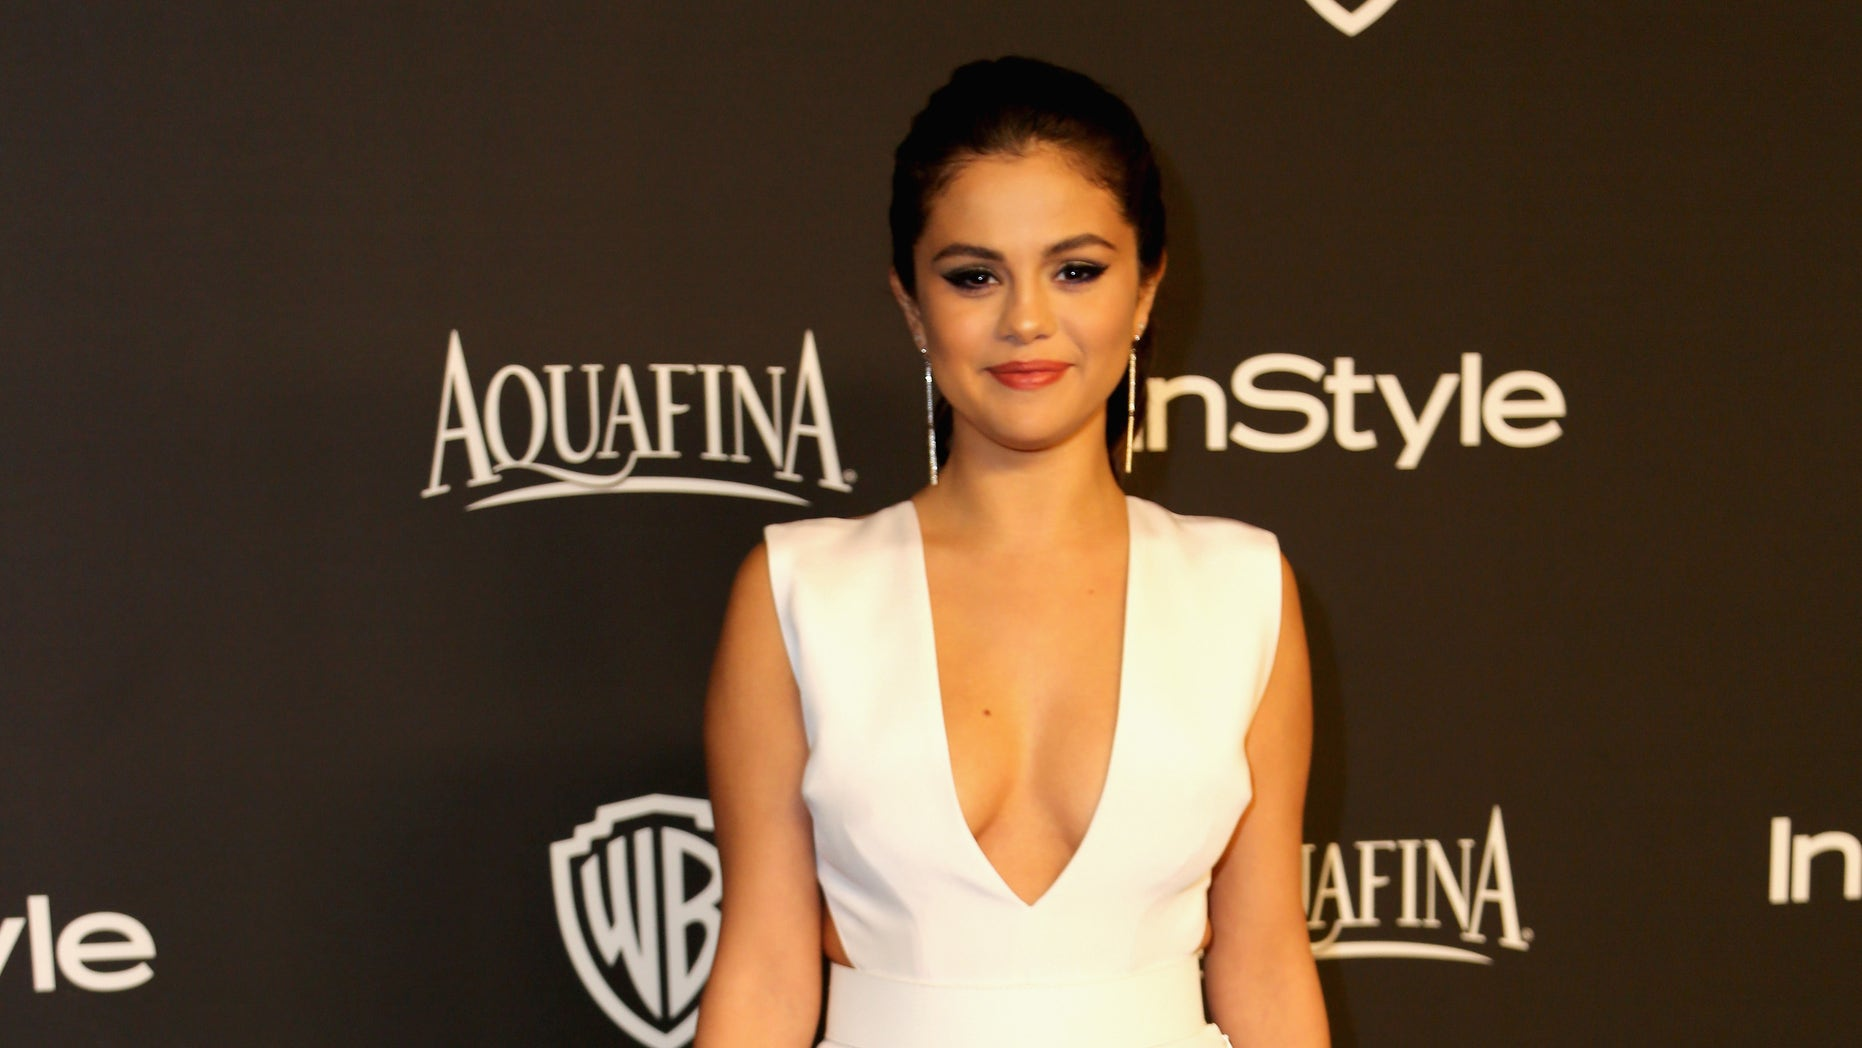 Selena Gomez at The Beverly Hilton Hotel on January 11, 2015 in Beverly Hills, California.